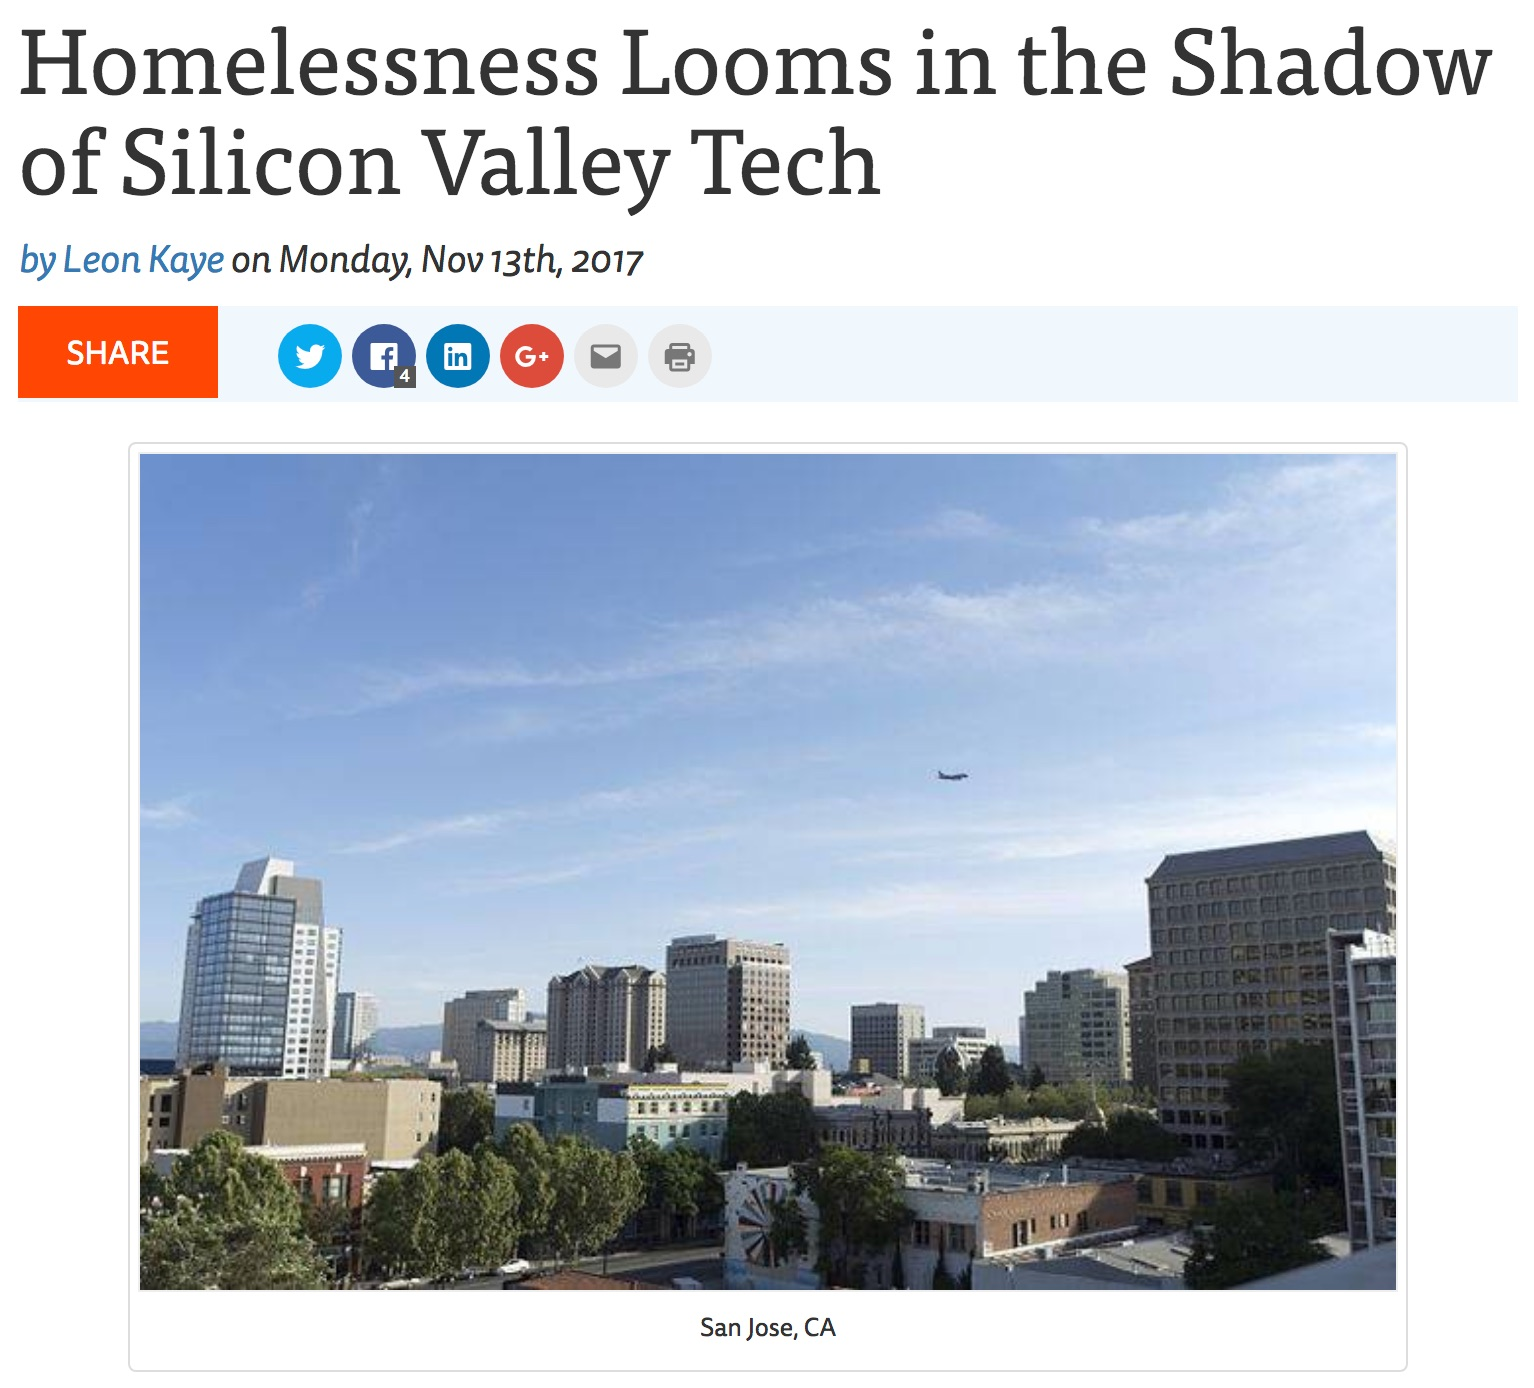 Homelessness_Looms_in_the_Shadow_of_Silicon_Valley_Tech.jpg